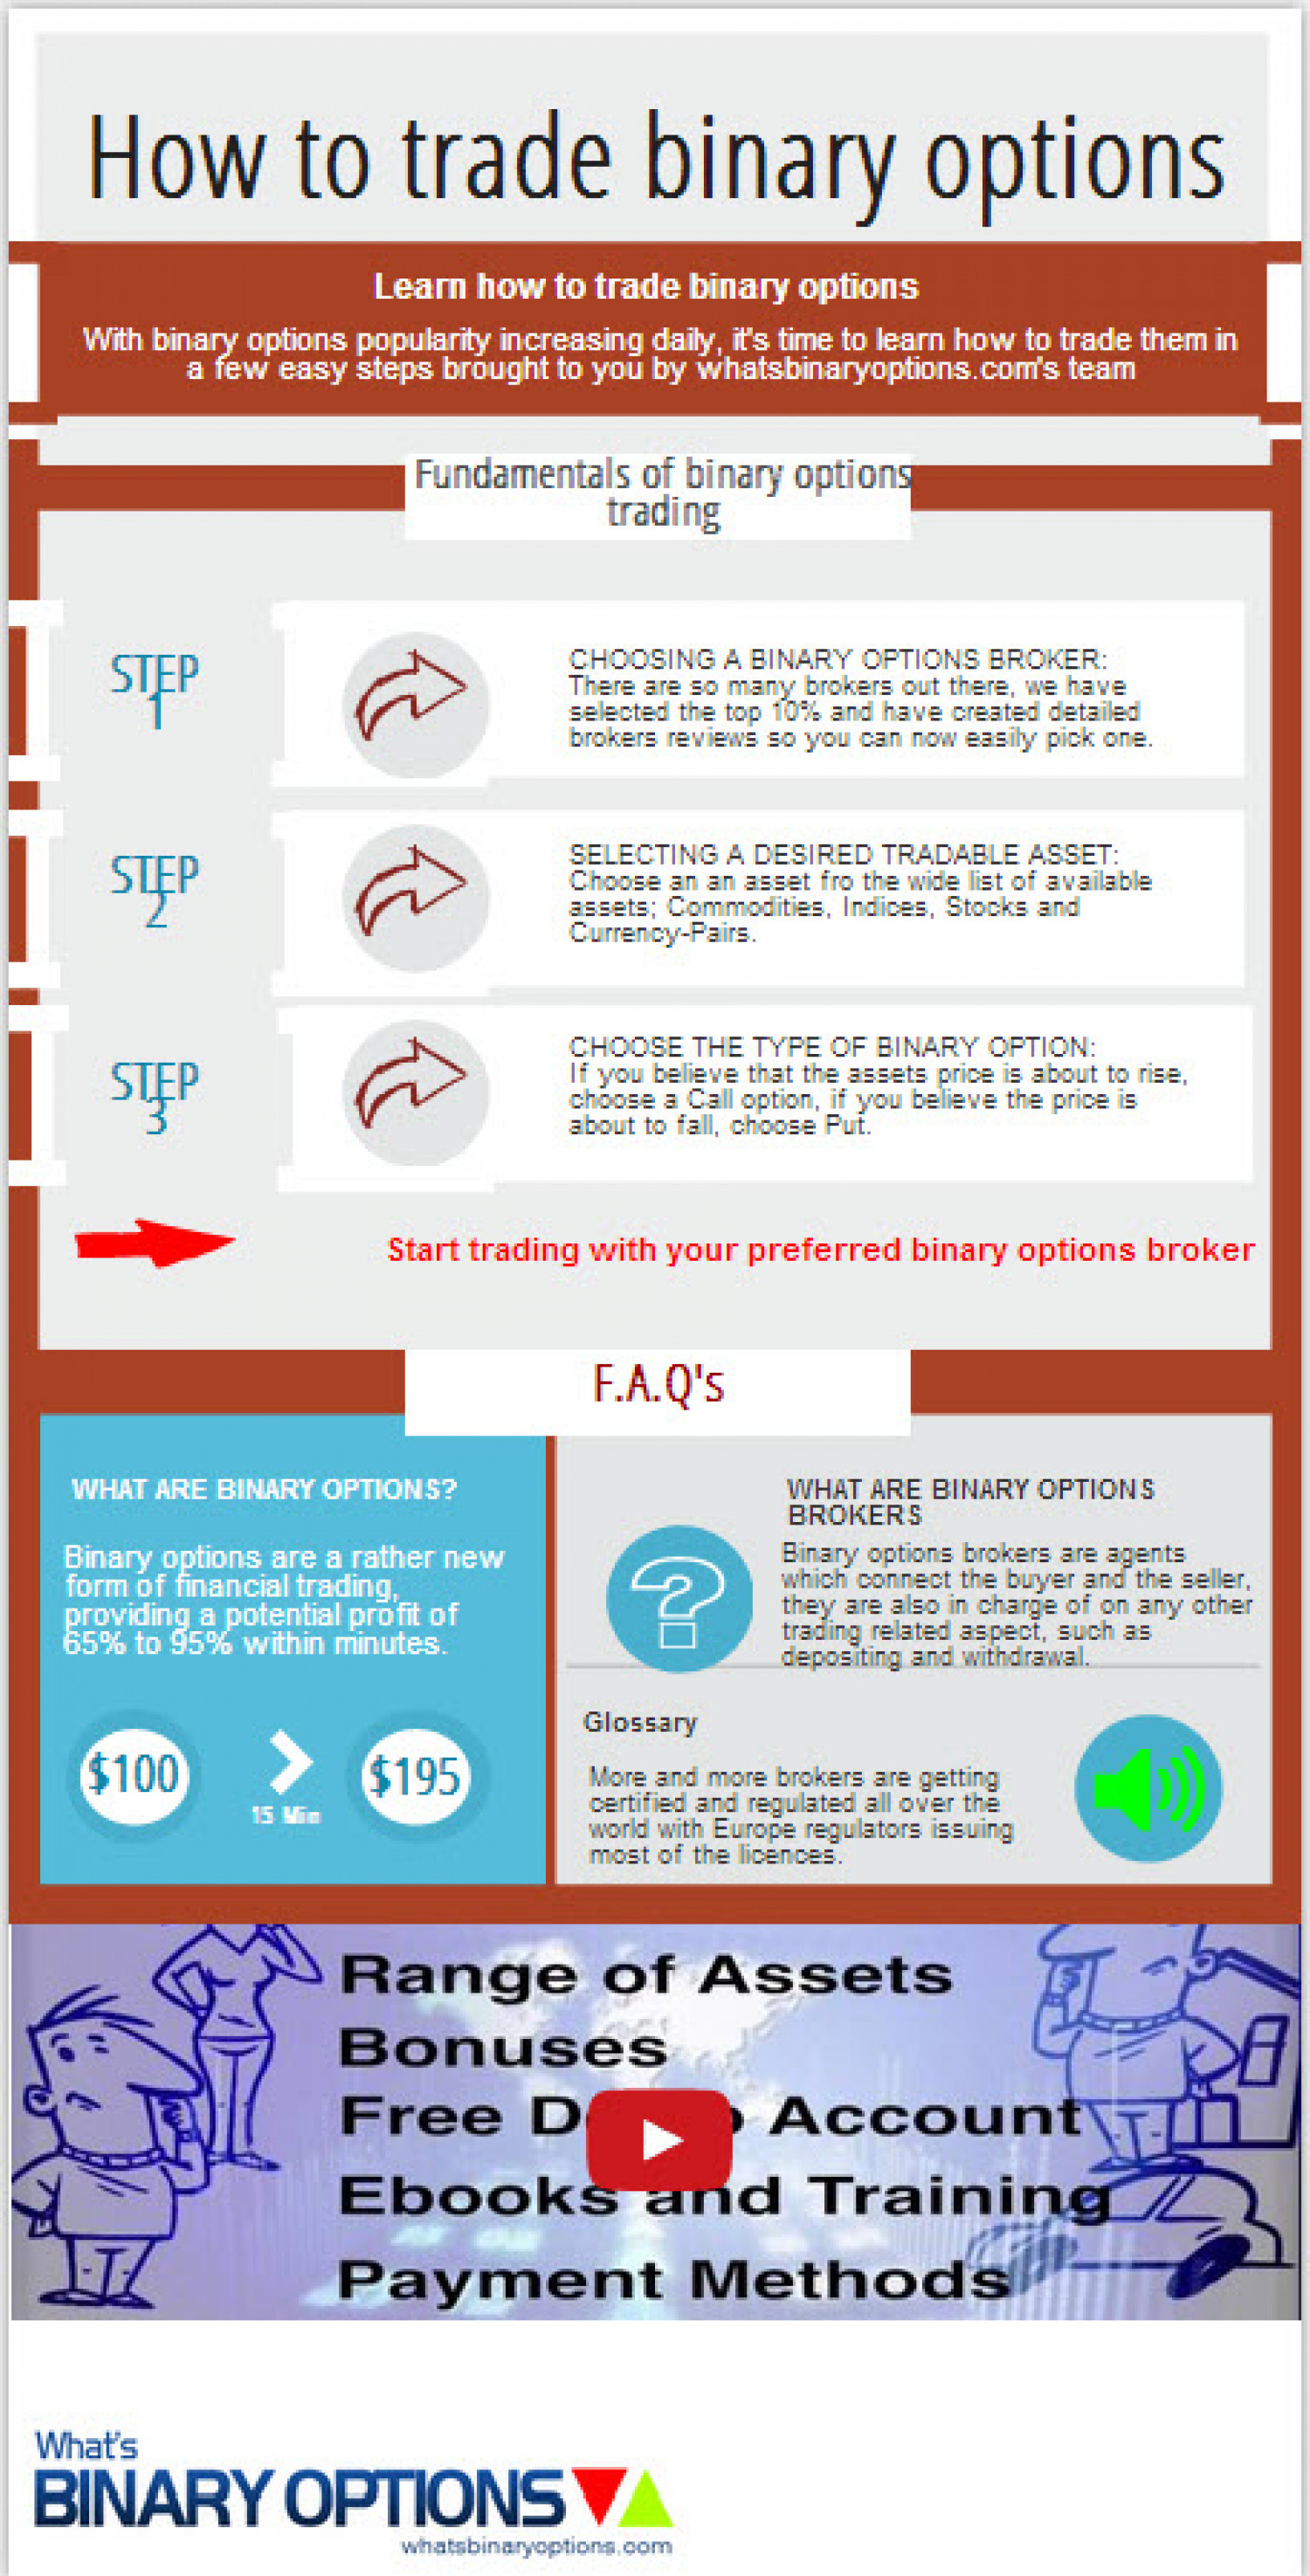 Binary options trade and how it works